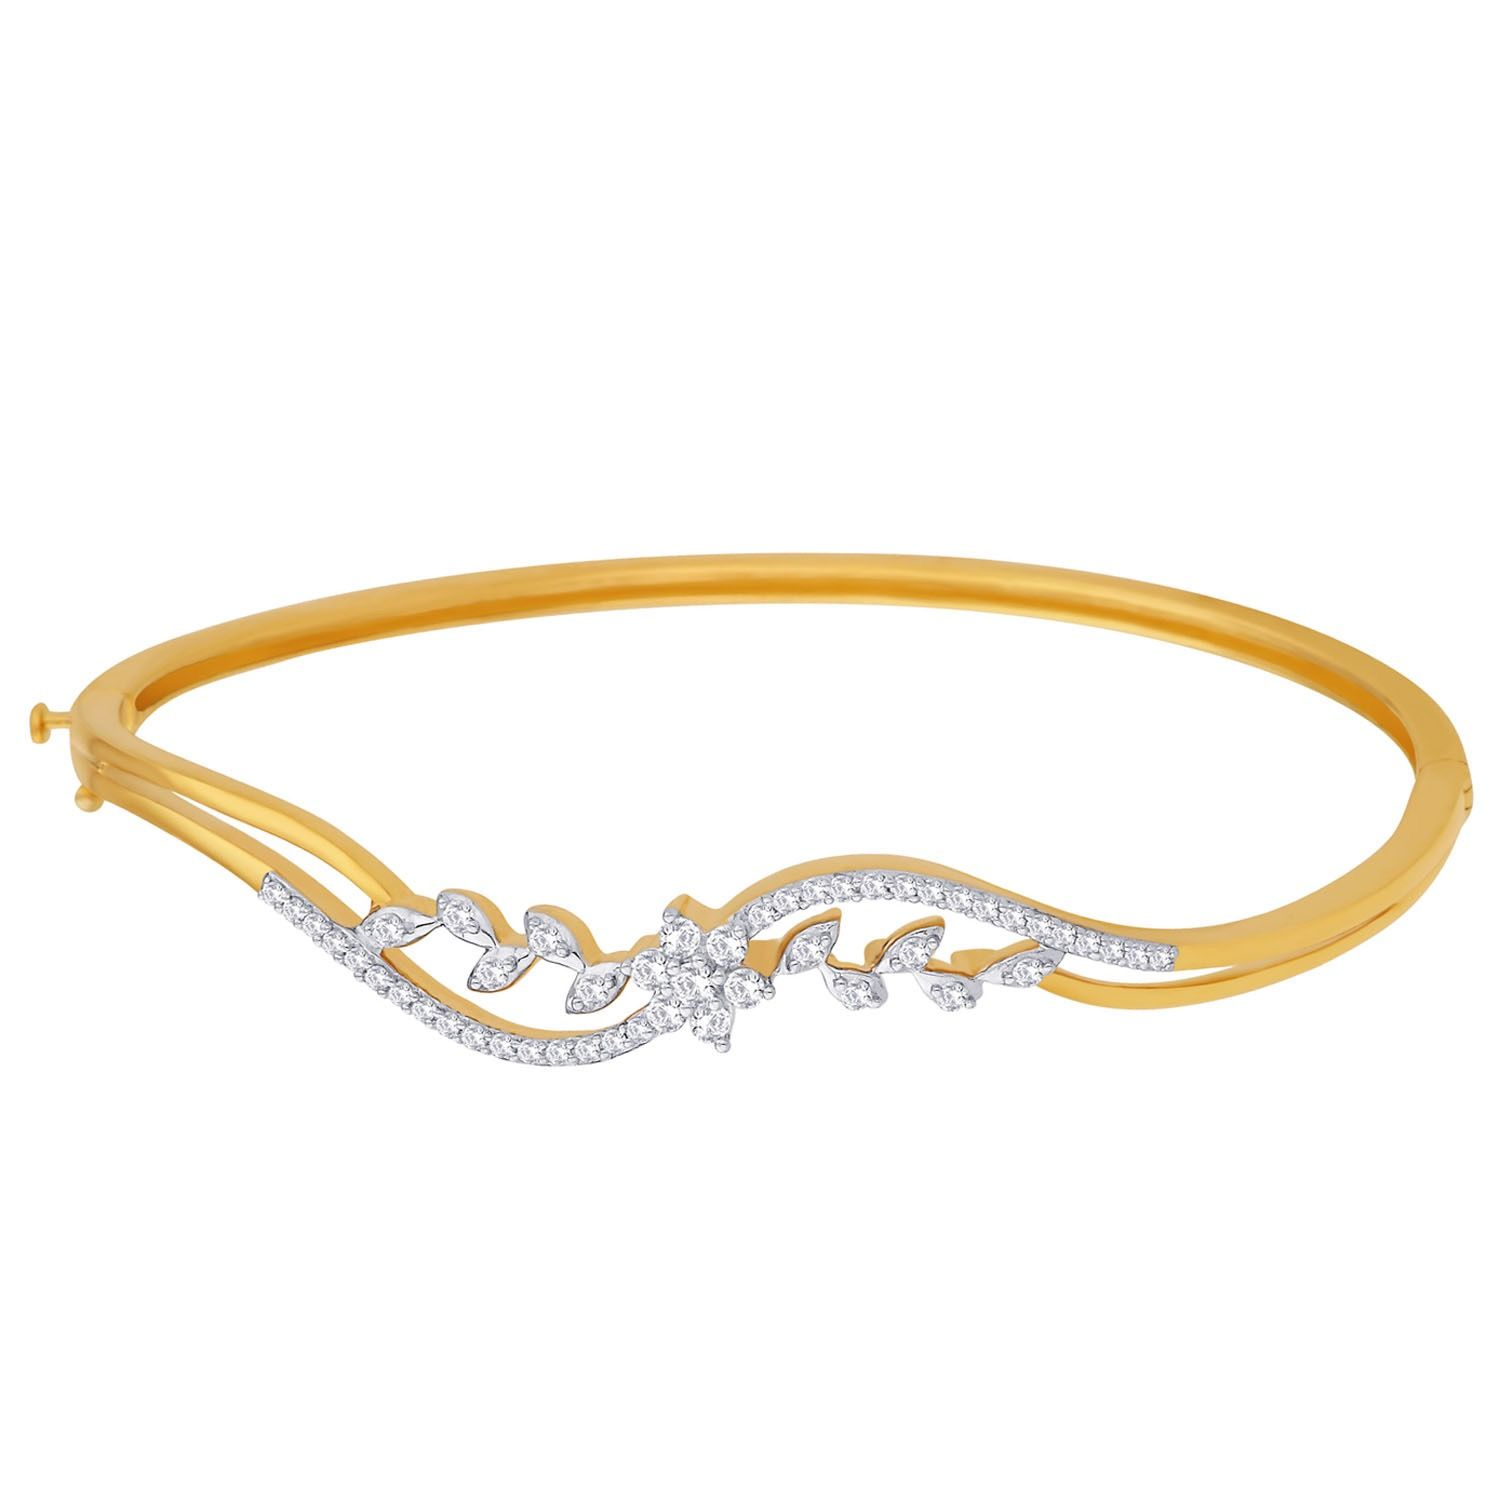 band products by anklet flowers an be too background arm as white ravishing with worn copy fun er bangle pb can